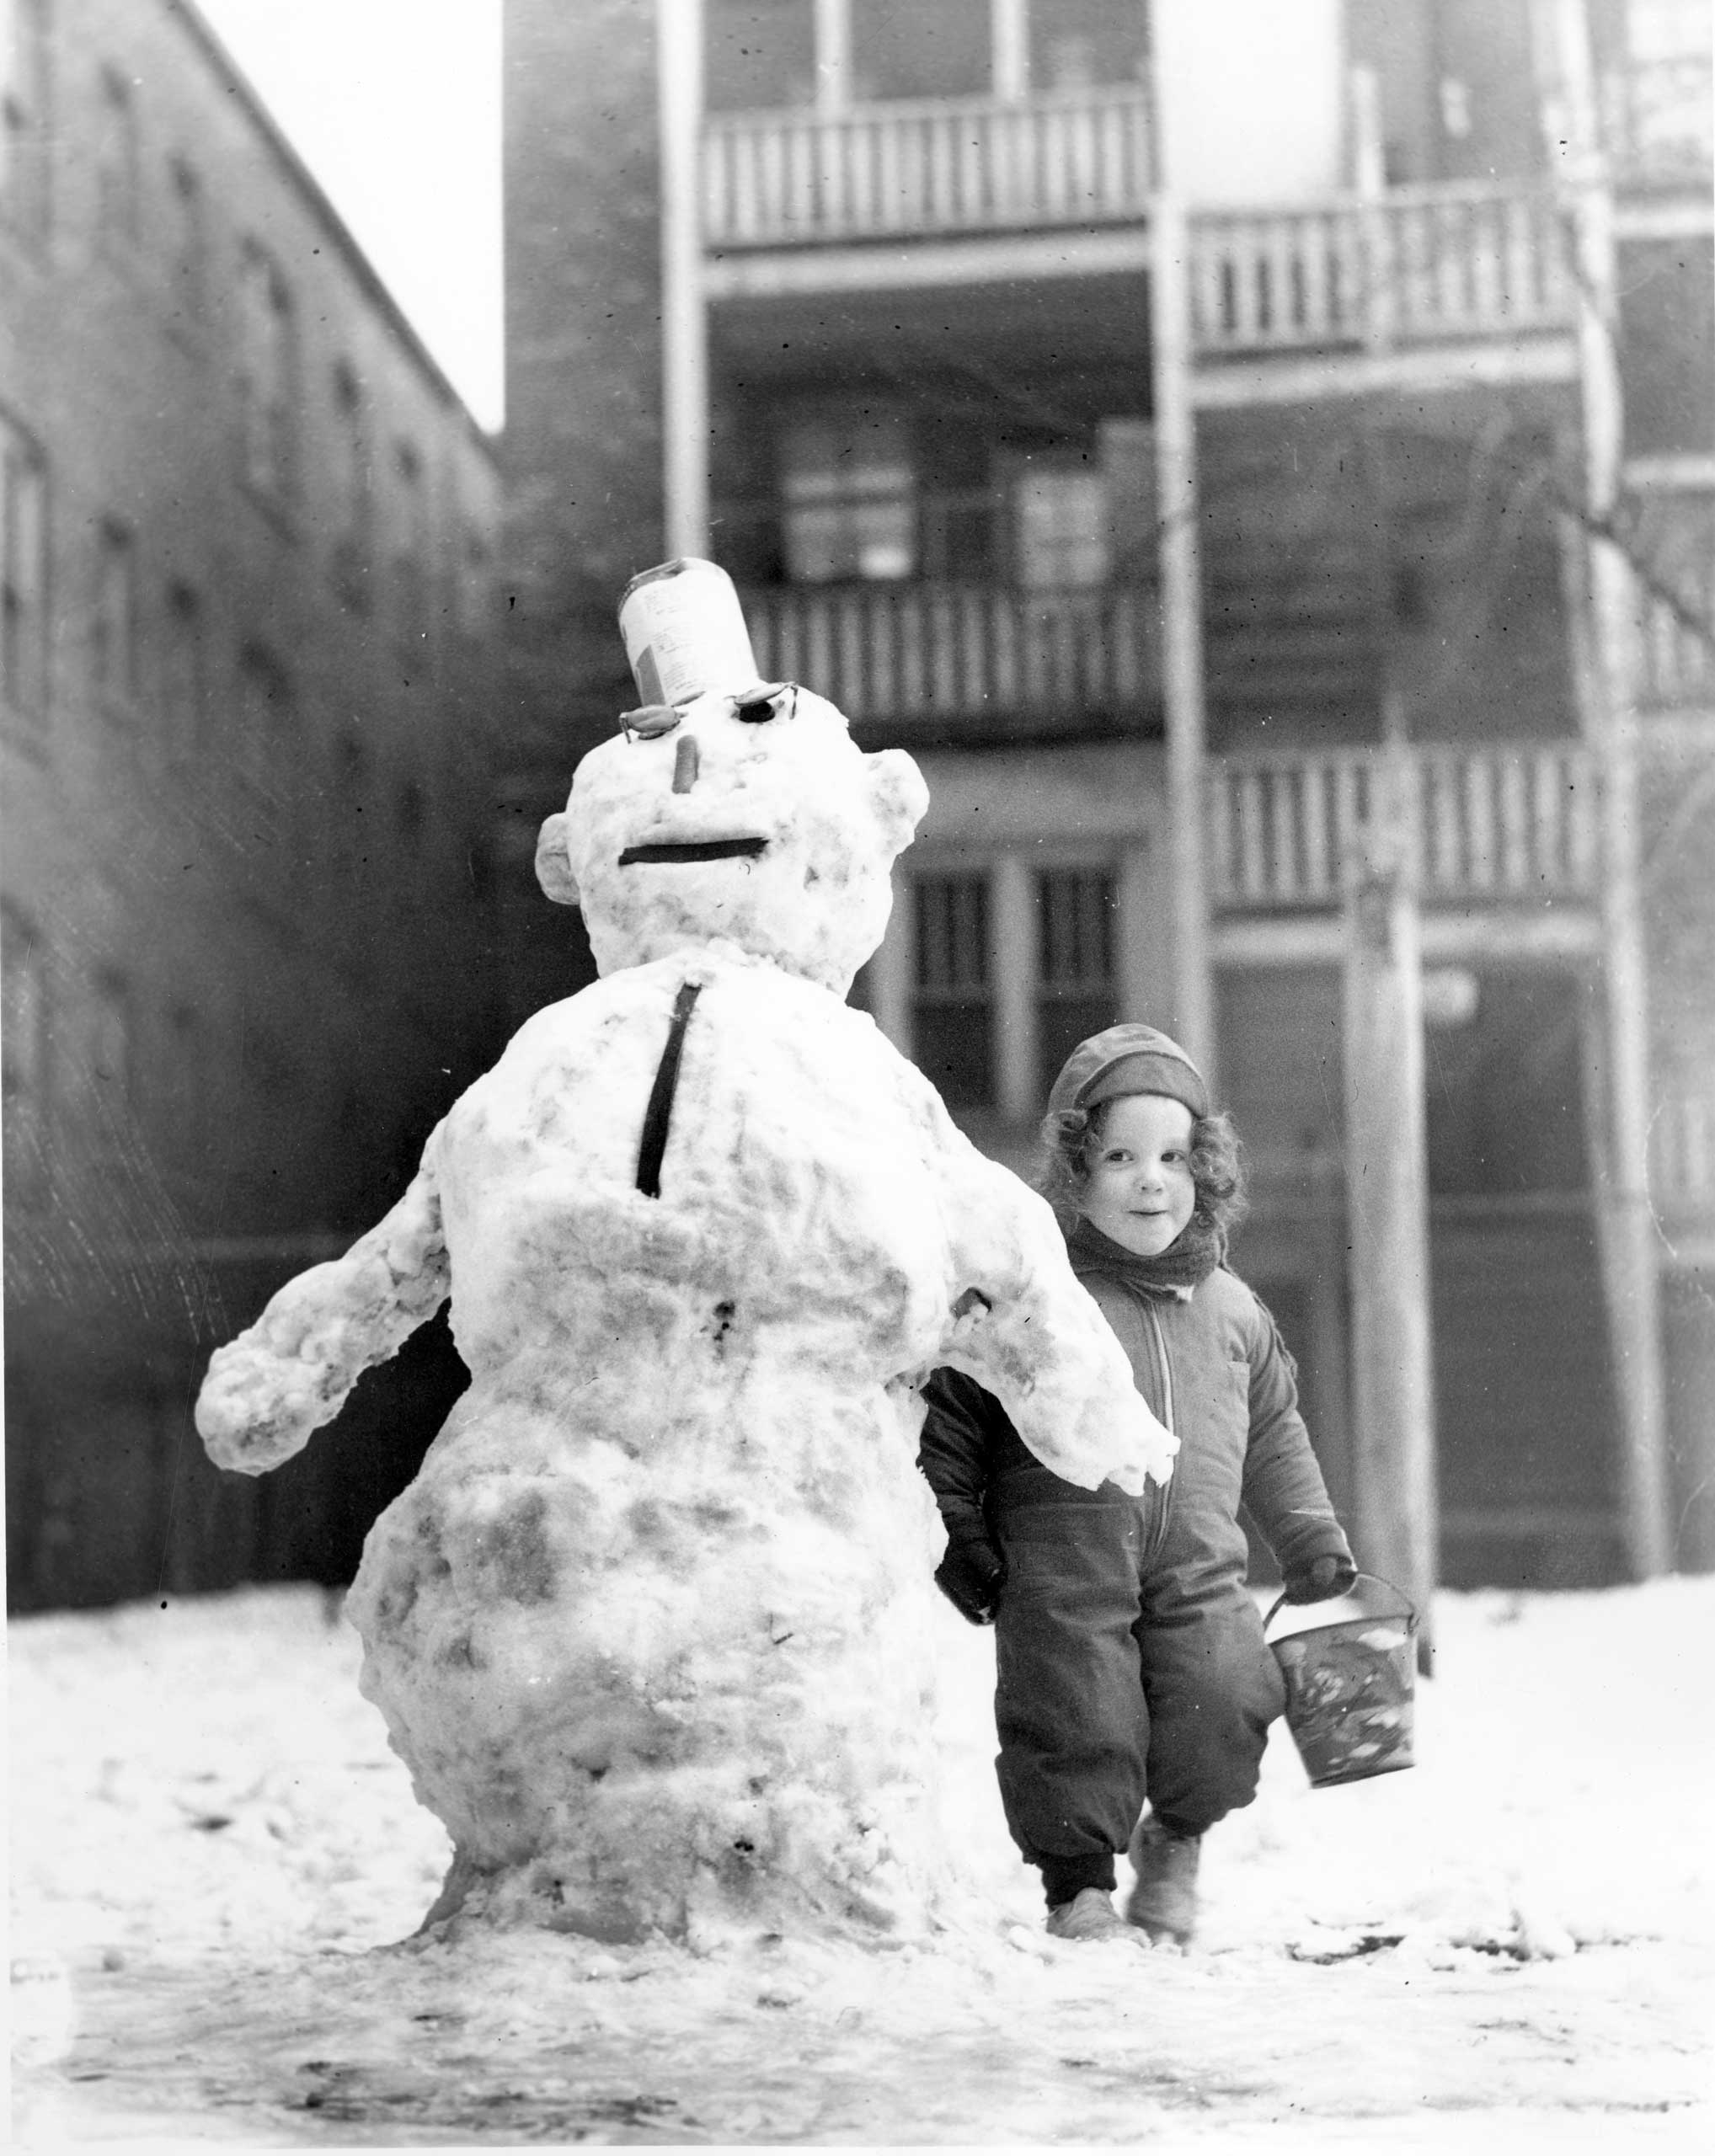 Mary Andrea Arnold in a snowsuit next to a snowman in Chicago on Jan. 17, 1943.